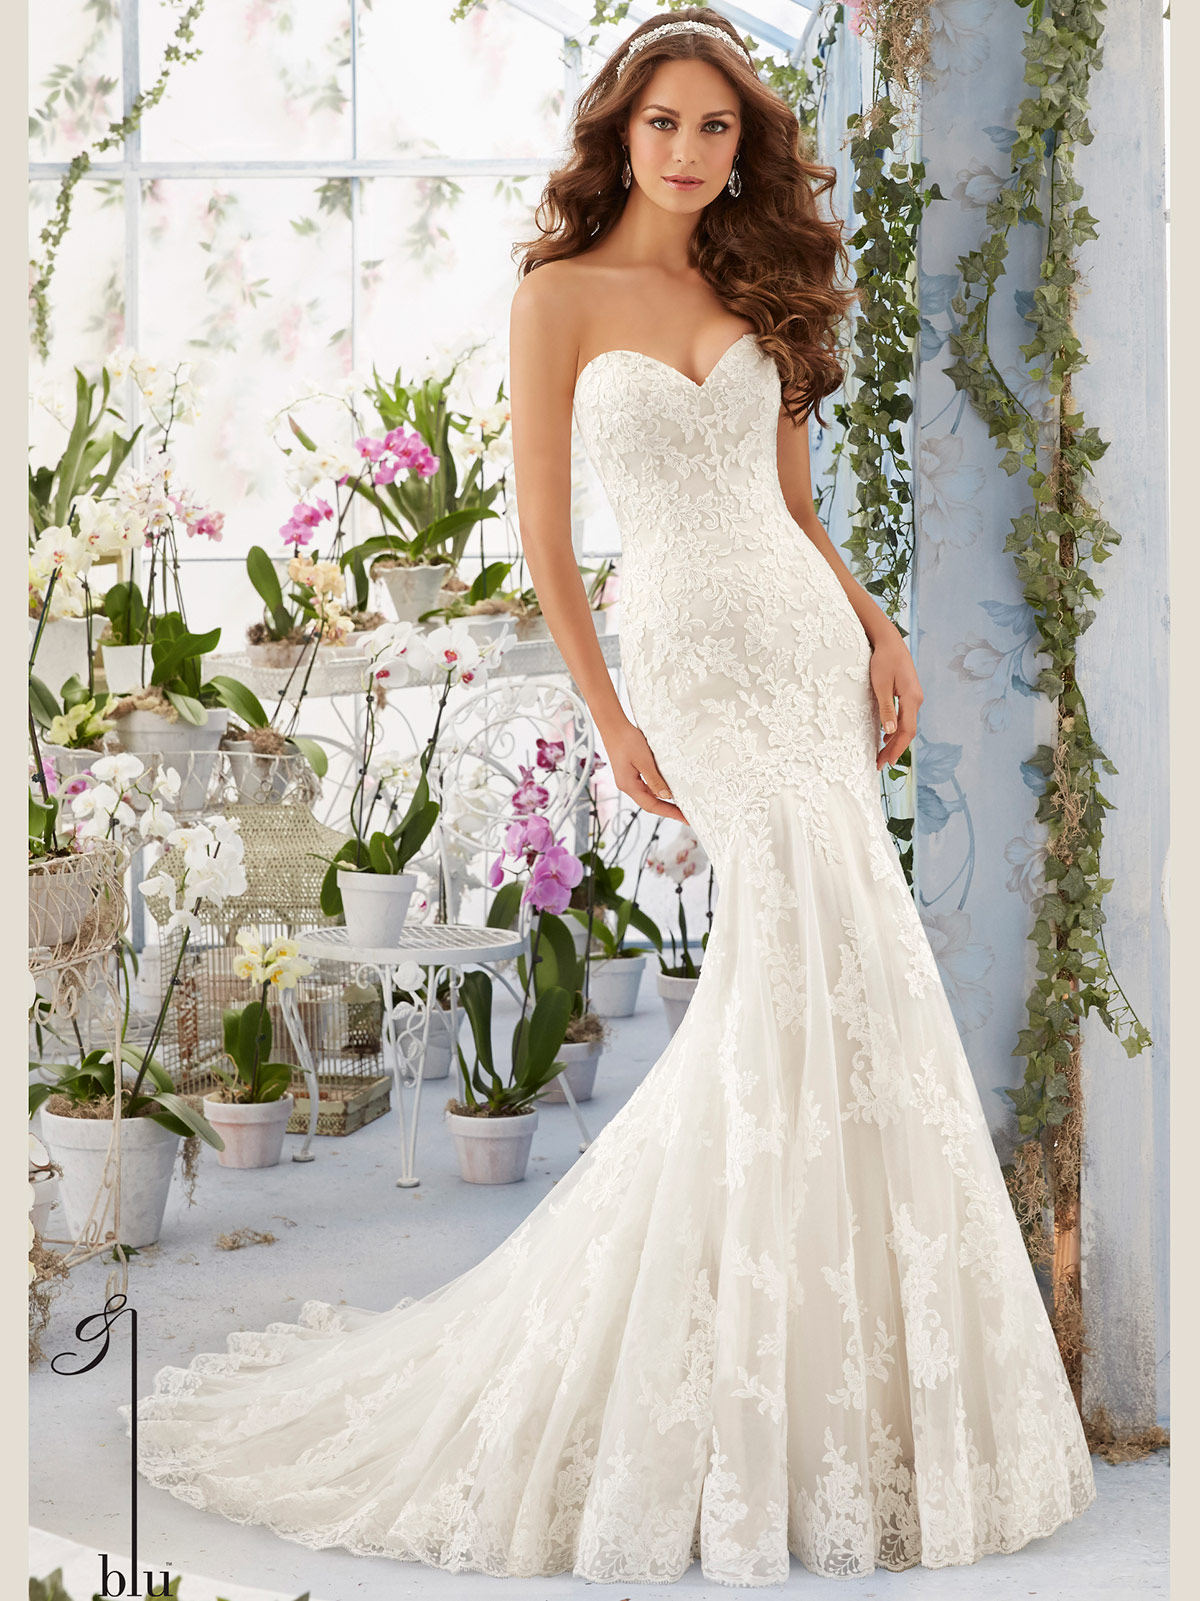 Mori lee blu 5413 sweetheart lace floor length bridal gown for Picture of a wedding dress